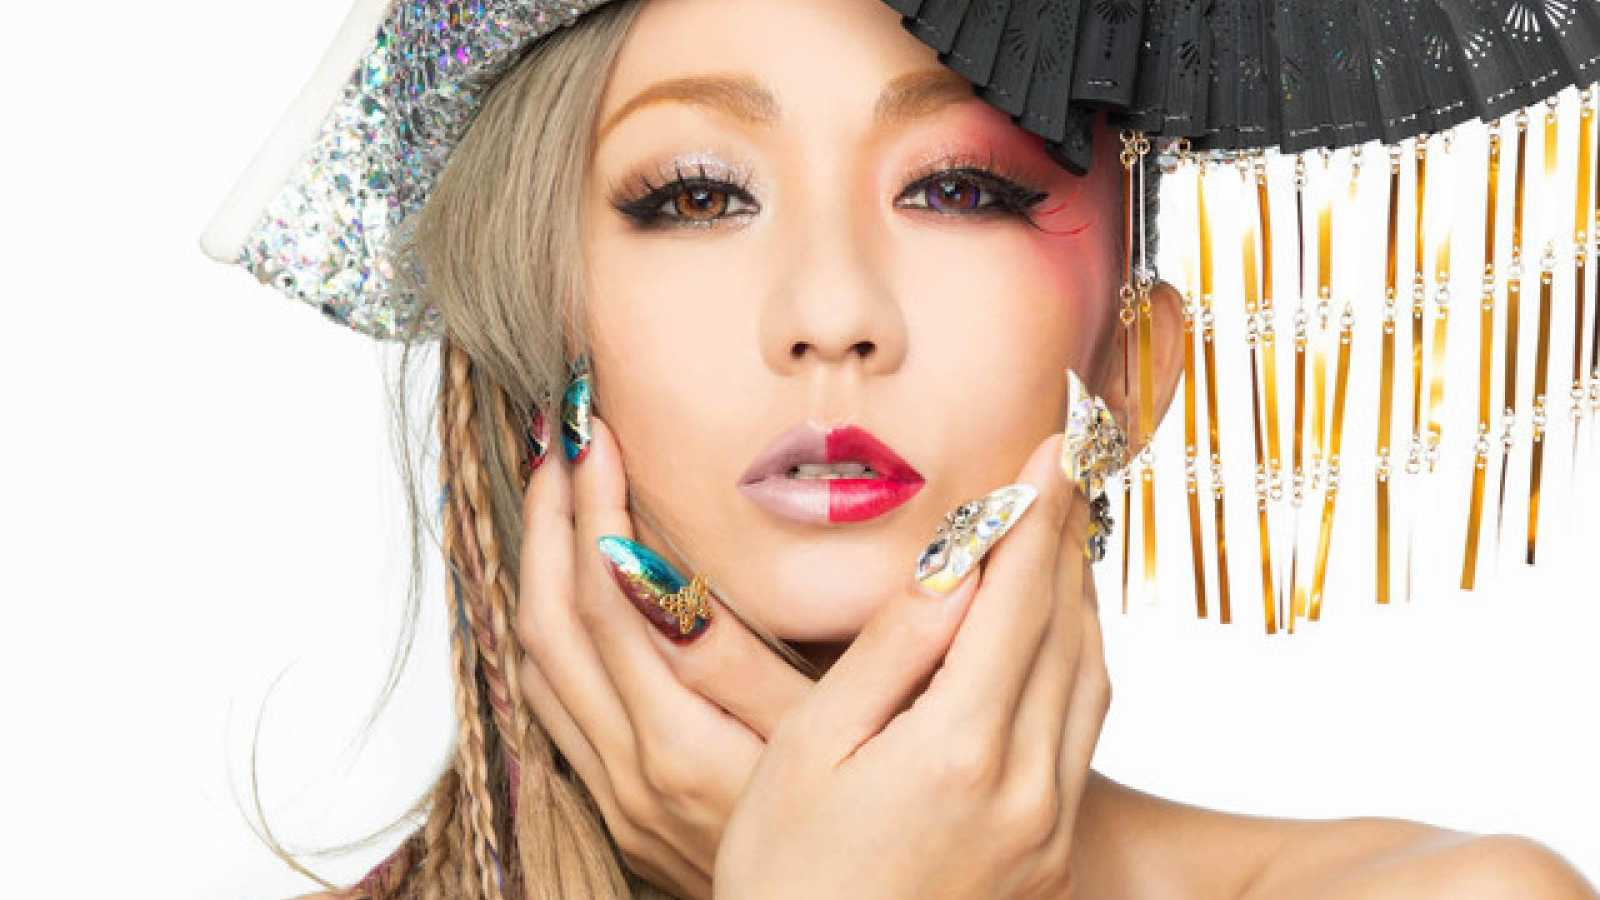 New Mini-Albums from Kumi Koda © Koda Kumi - avex - All Rights Reserved